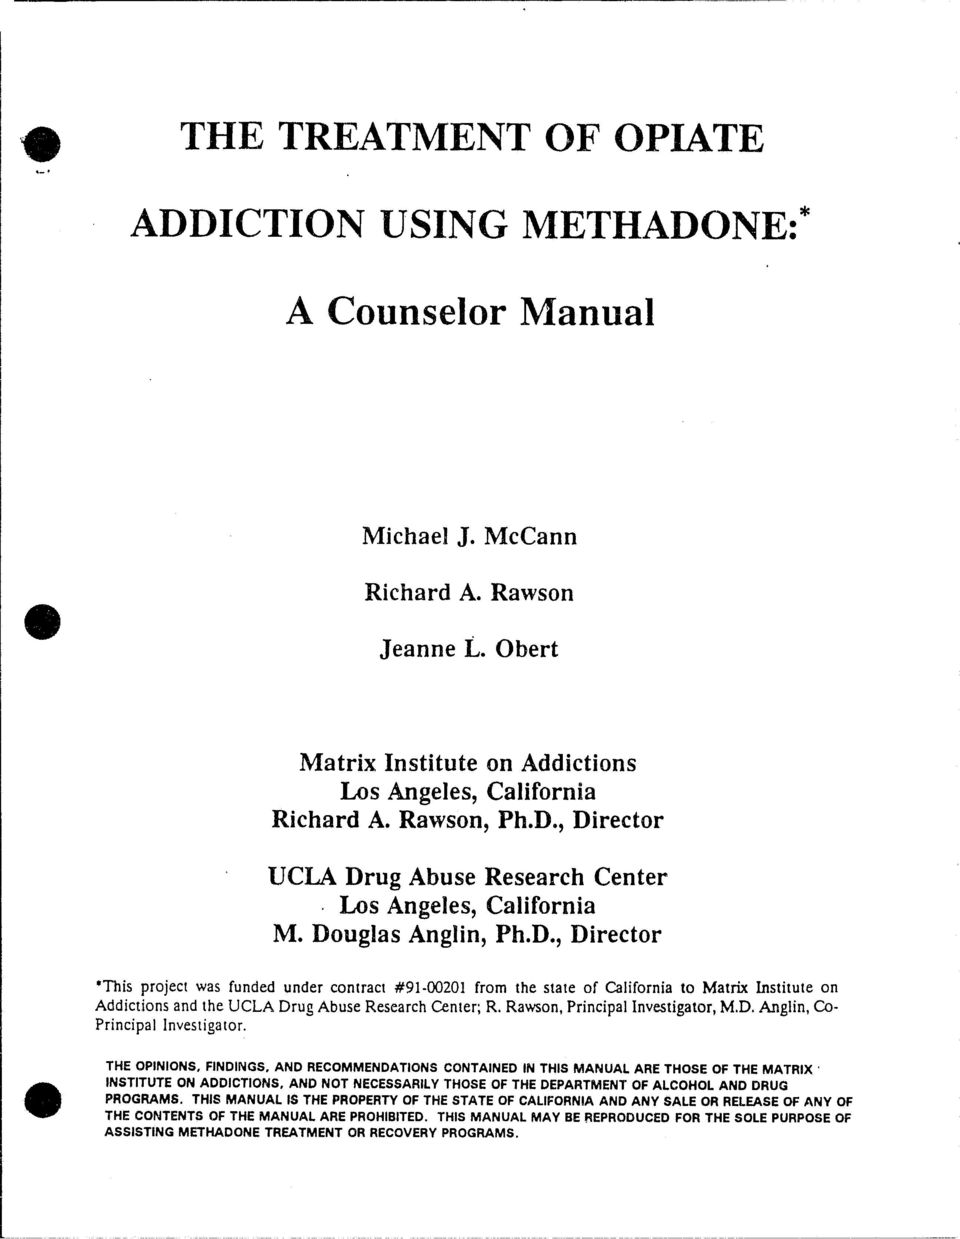 Rawson, Principal Investigator, M.D. Anglin, Co Principal Investigator. THE OPINIONS. FINDINGS. AND RECOMMENDATIONS CONTAINED IN THIS MANUAL ARE THOSE OF THE MATRIX' INSTITUTE ON ADDICTIONS.